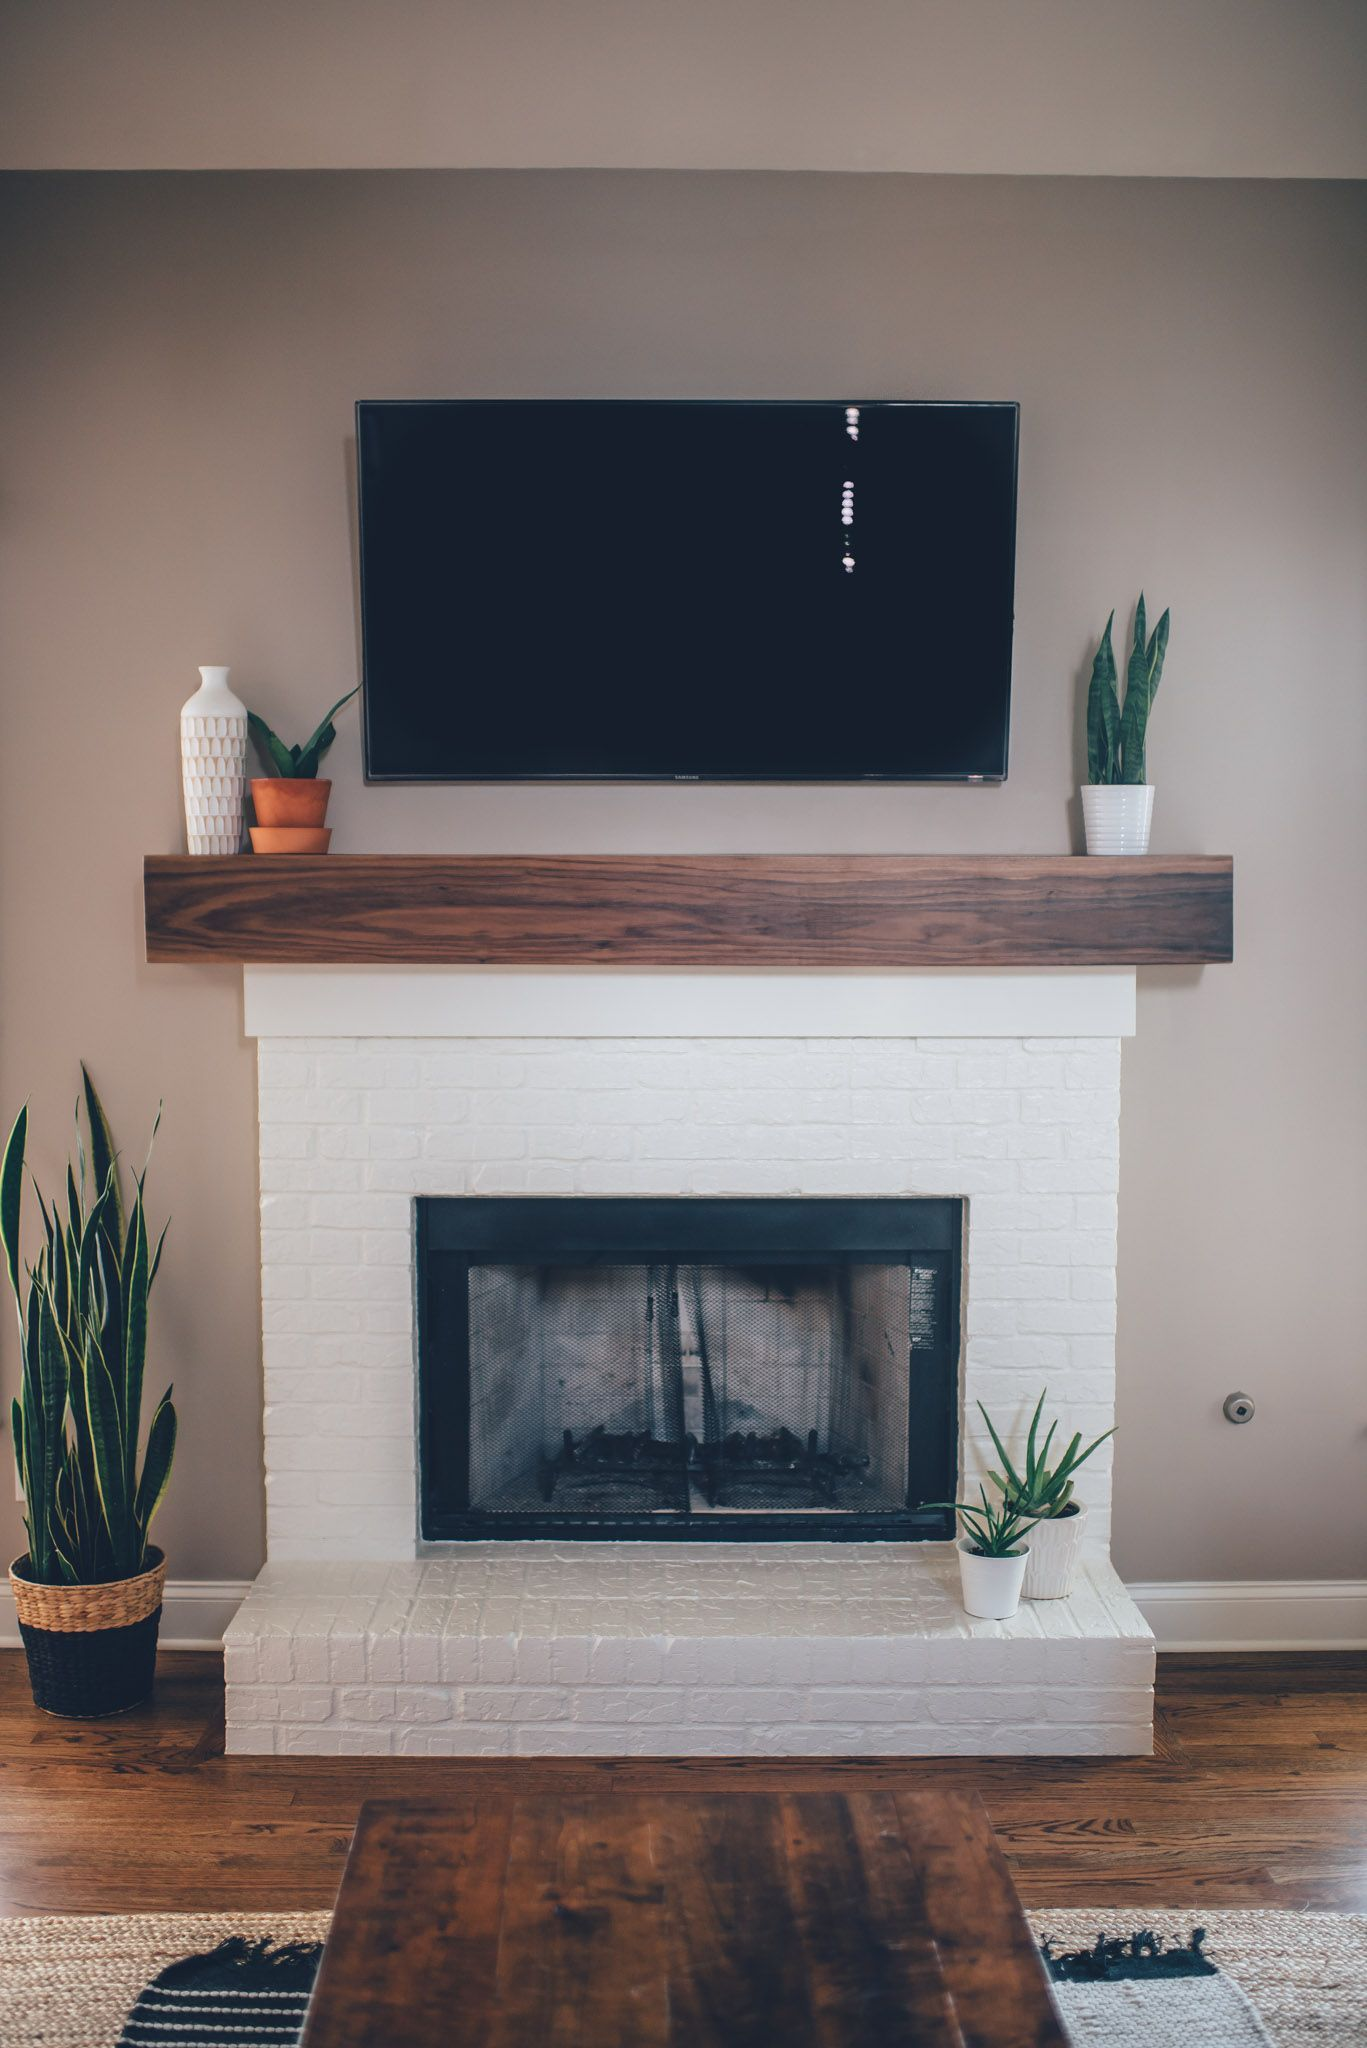 Modern White Brick Fireplace & Walnut Mantel DIY #whitebrickfireplace Modern White Brick Fireplace & Walnut Mantel DIY – The Southern Trunk #whitebrickfireplace